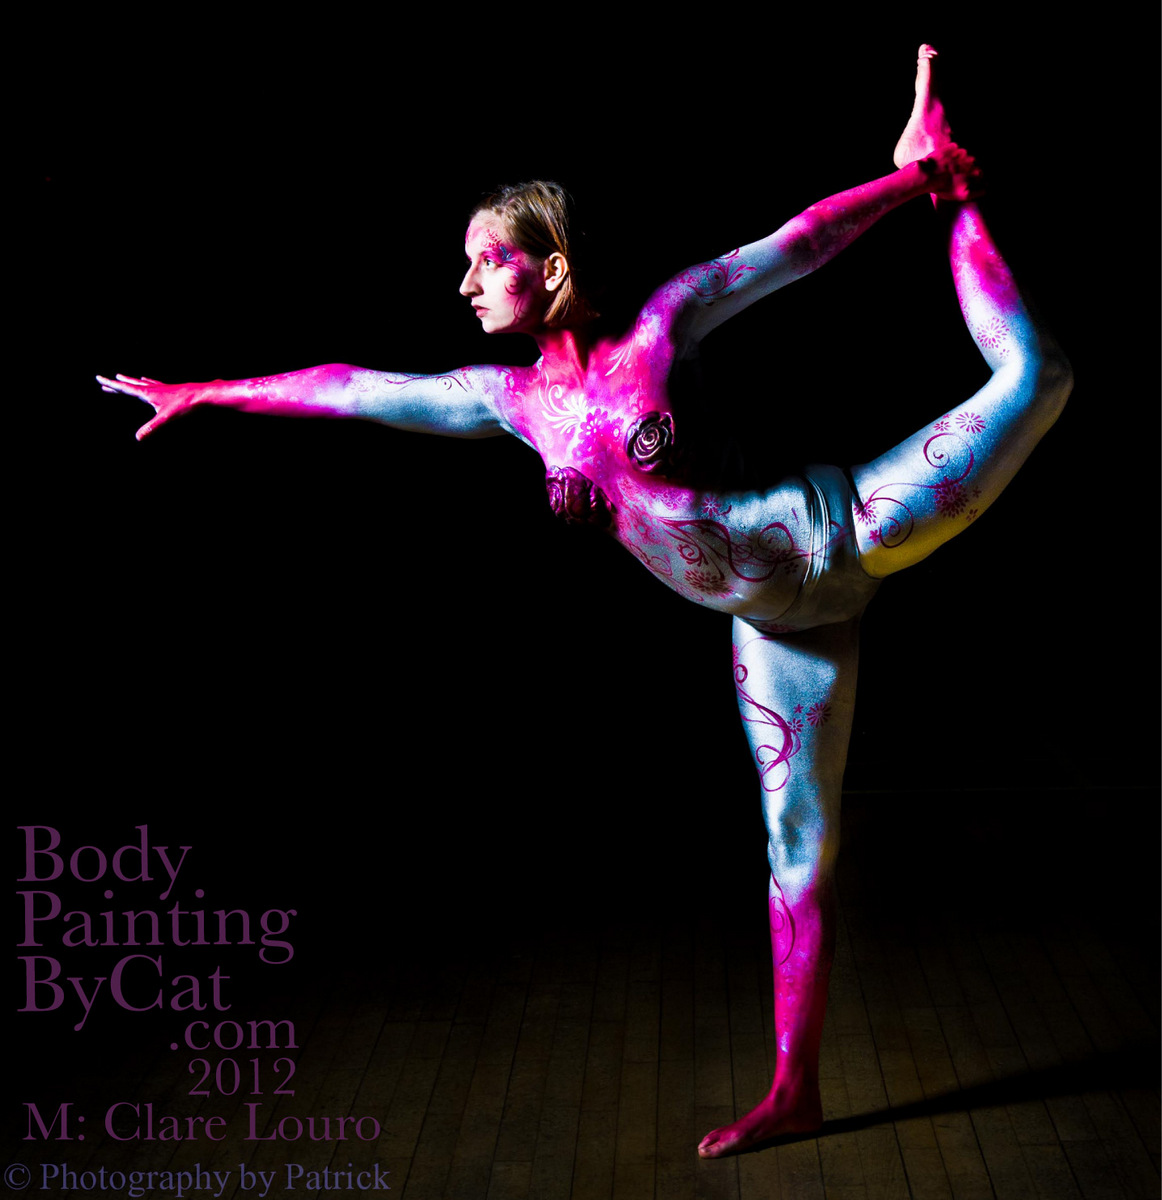 Bendy Claire Gymnast Body Paint Shoot Body Painting By Cat